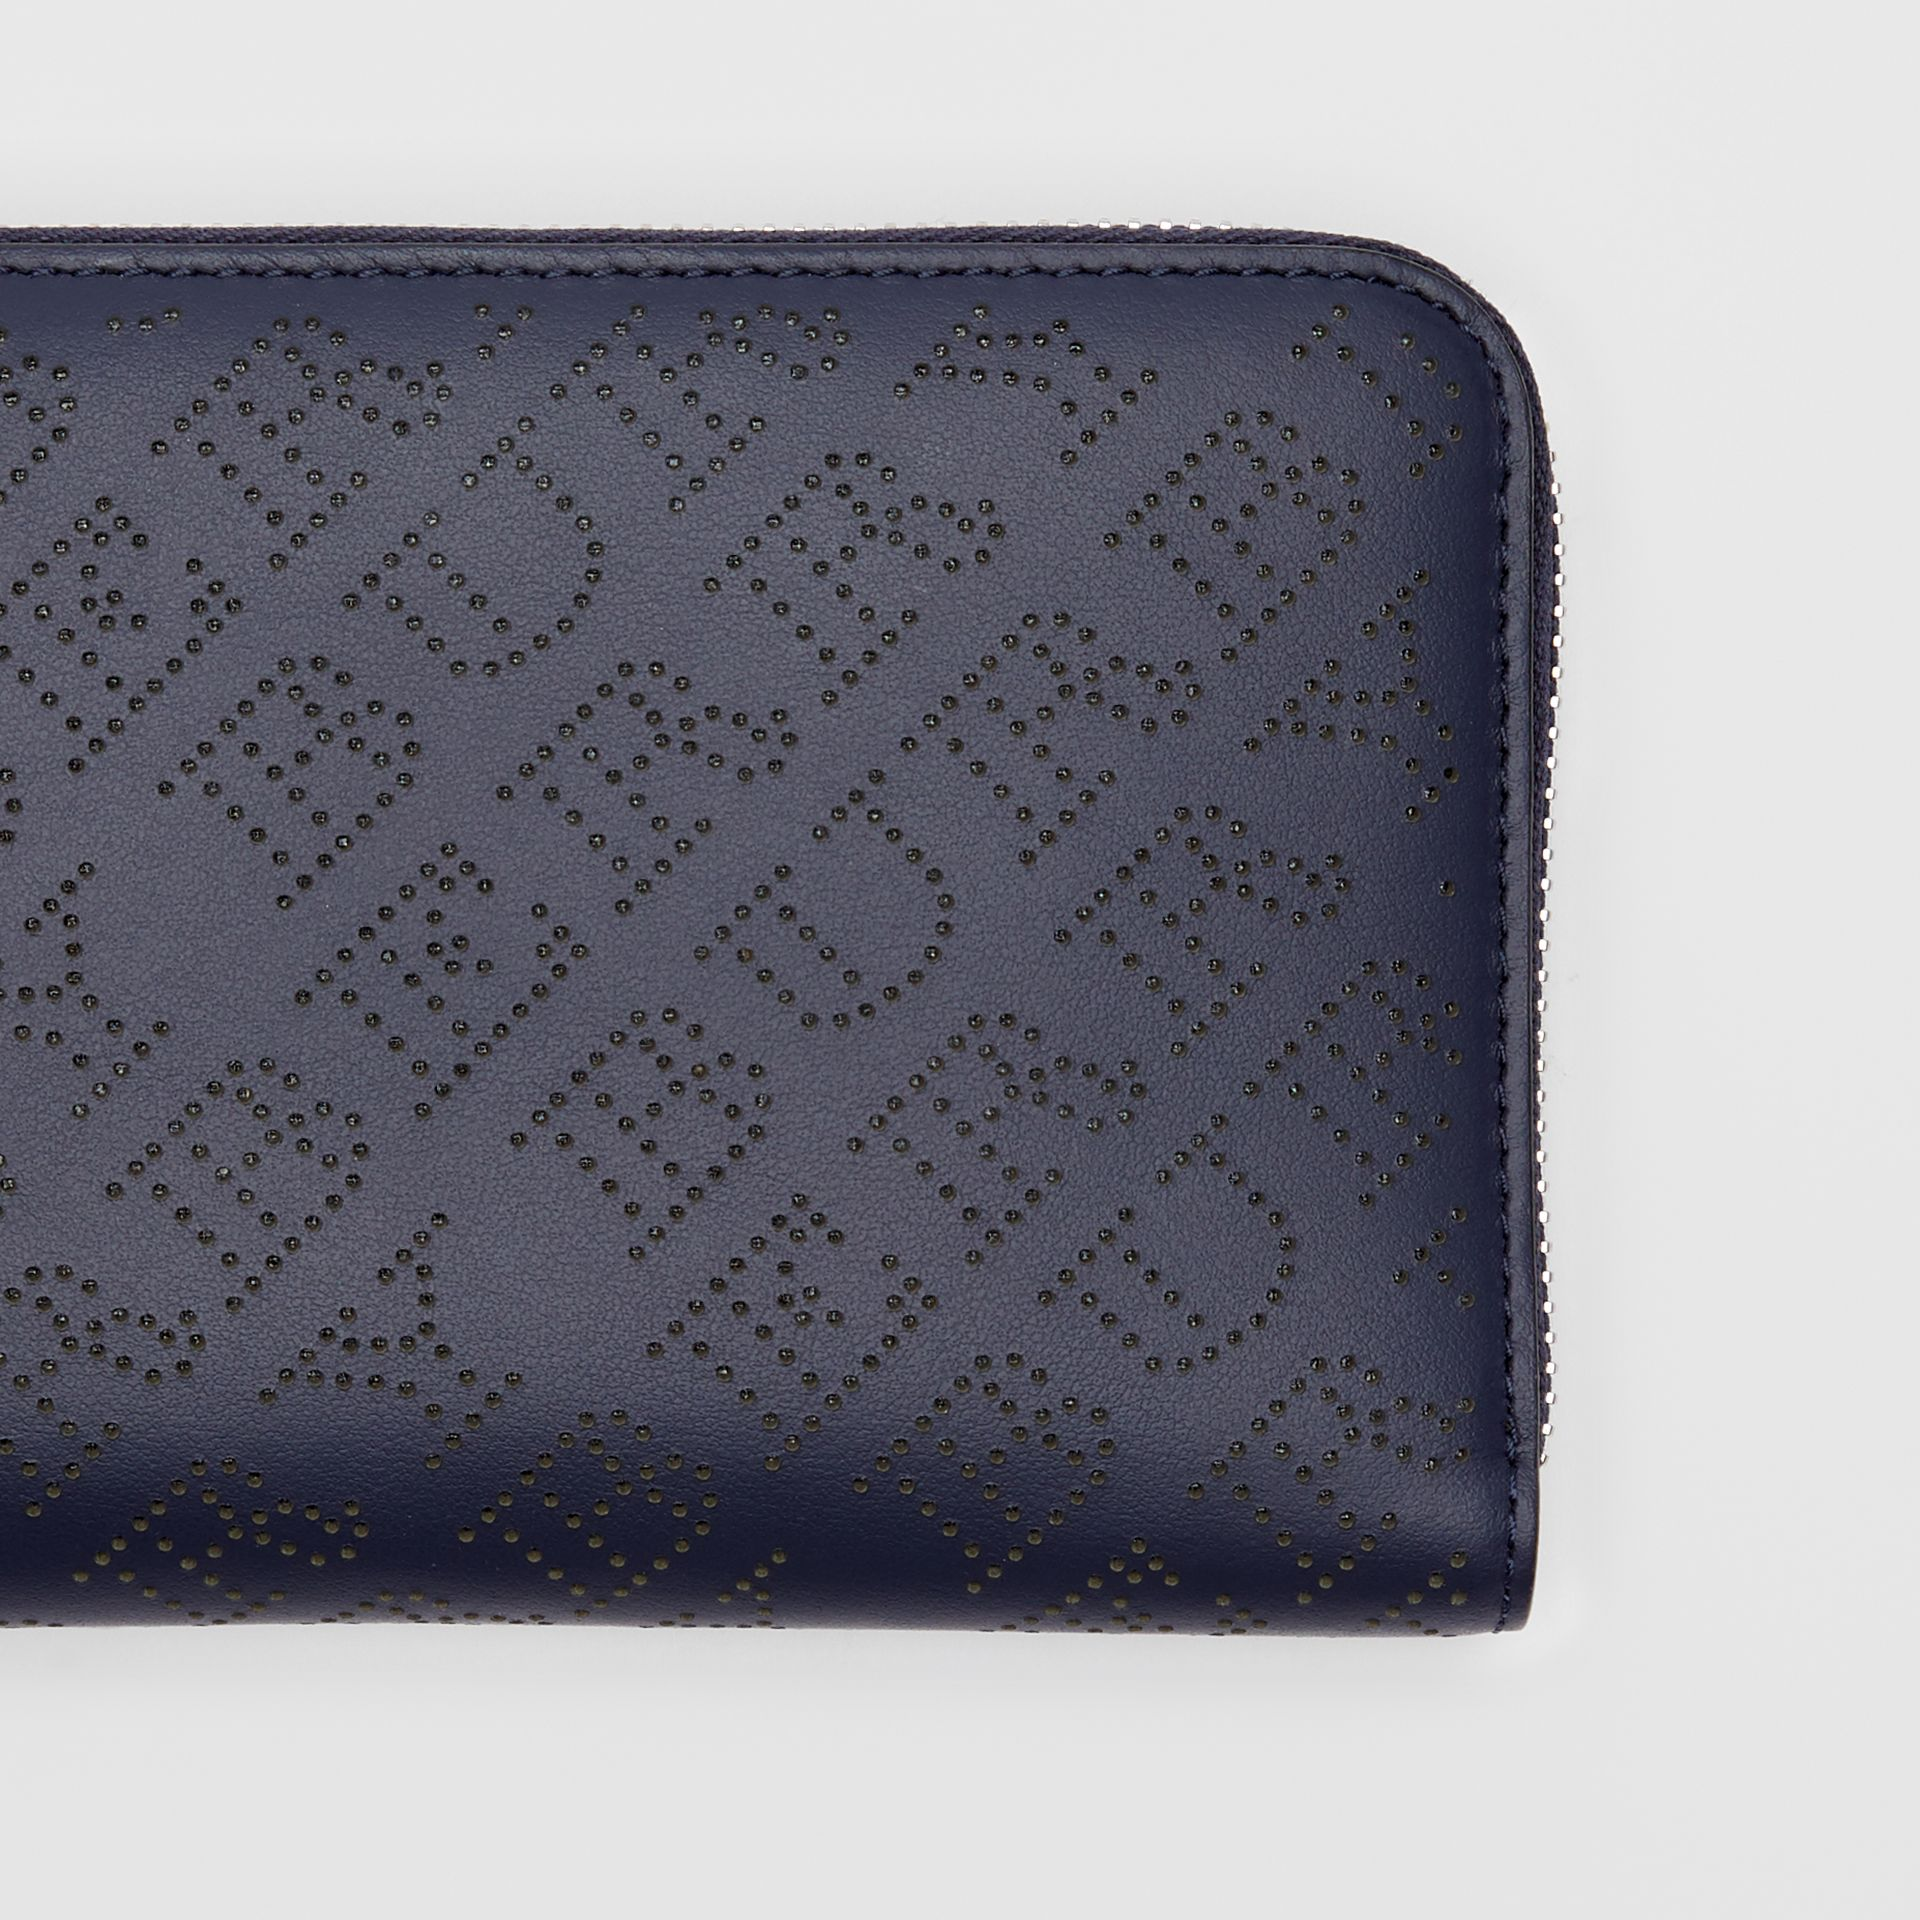 Perforated Leather Ziparound Wallet in Navy - Women | Burberry - gallery image 1